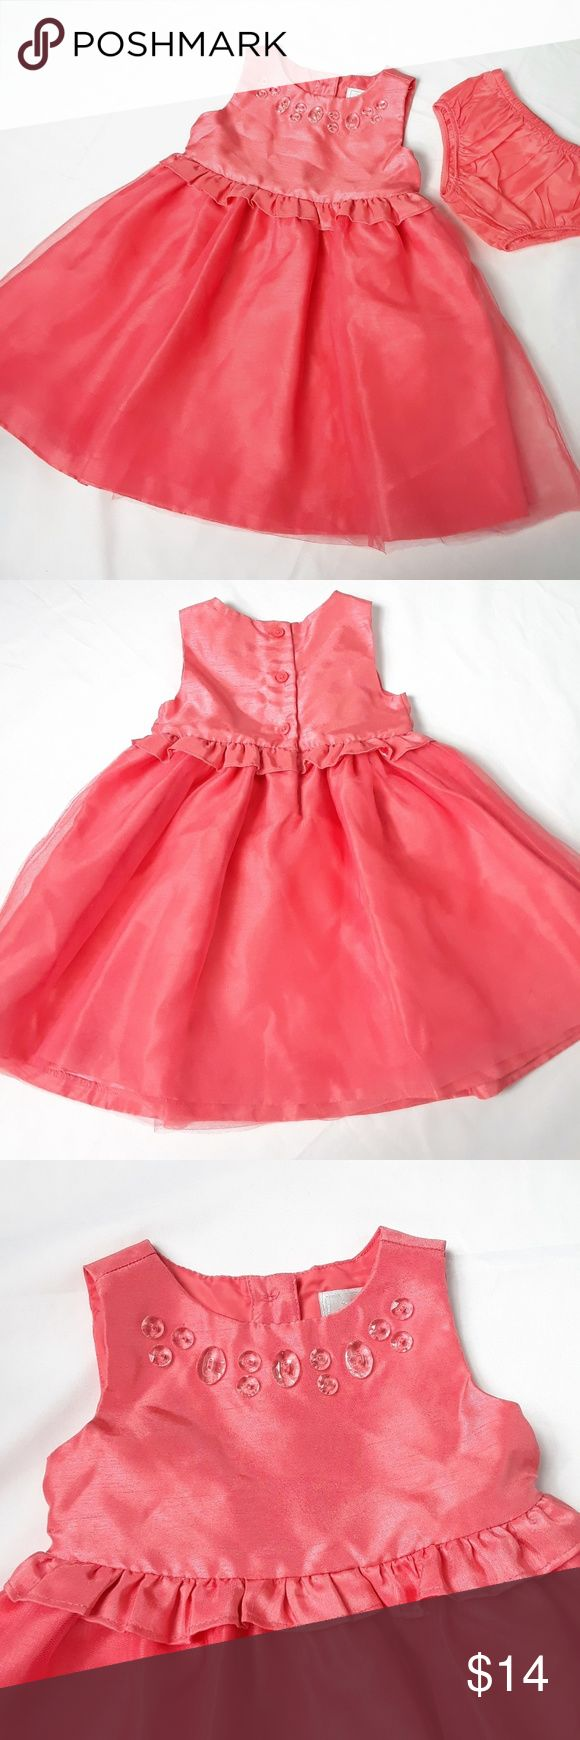 Dressed Up by Gymboree Orange Coral Dress 12-18m Orange/coral beaded dress from Gymboree. Has clear faceted beads on front, tulle layered skirt, buttons in the back, comes with matching diaper cover. Perfect for Easter, weddings, and other spring time events. 12-18m. Has one small mark on back of skirt tulle (see last picture). Gymboree Dresses Formal